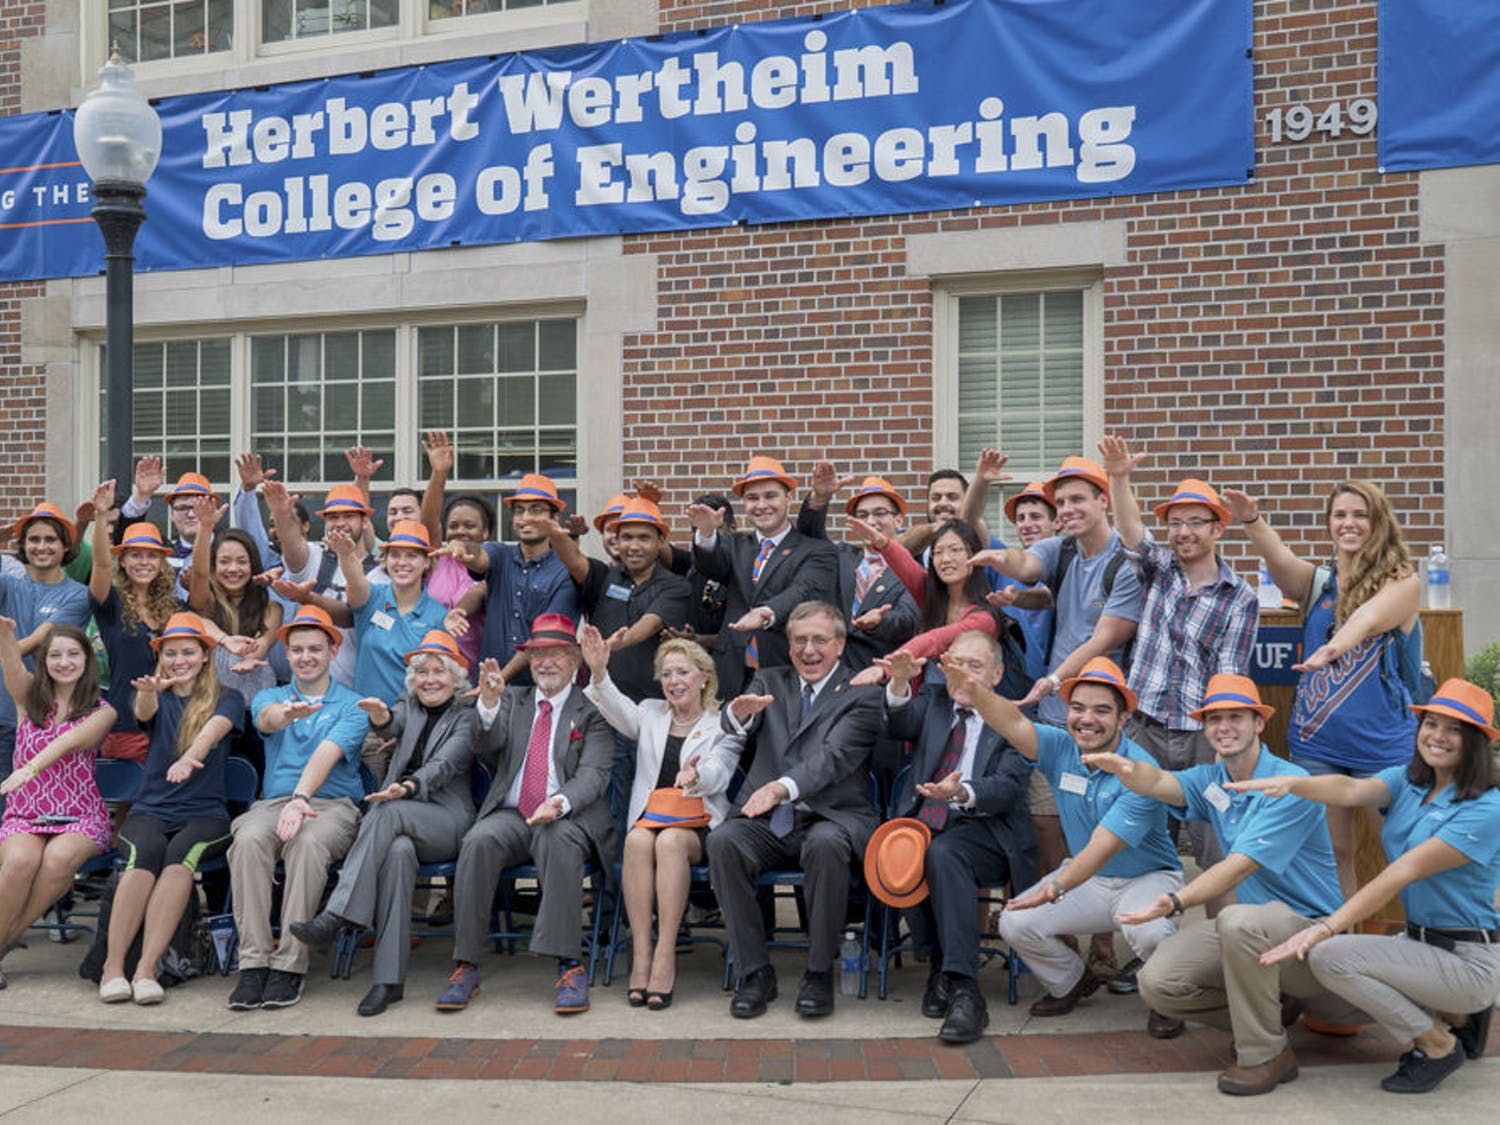 Herbert Wertheim (front row, fifth from left) does the Gator Chomp with UF students and faculty outside Weil Hall on Oct. 1, 2015. The College of Engineering is using Wertheim's $50 million donation to launch a $300 million research initiative.